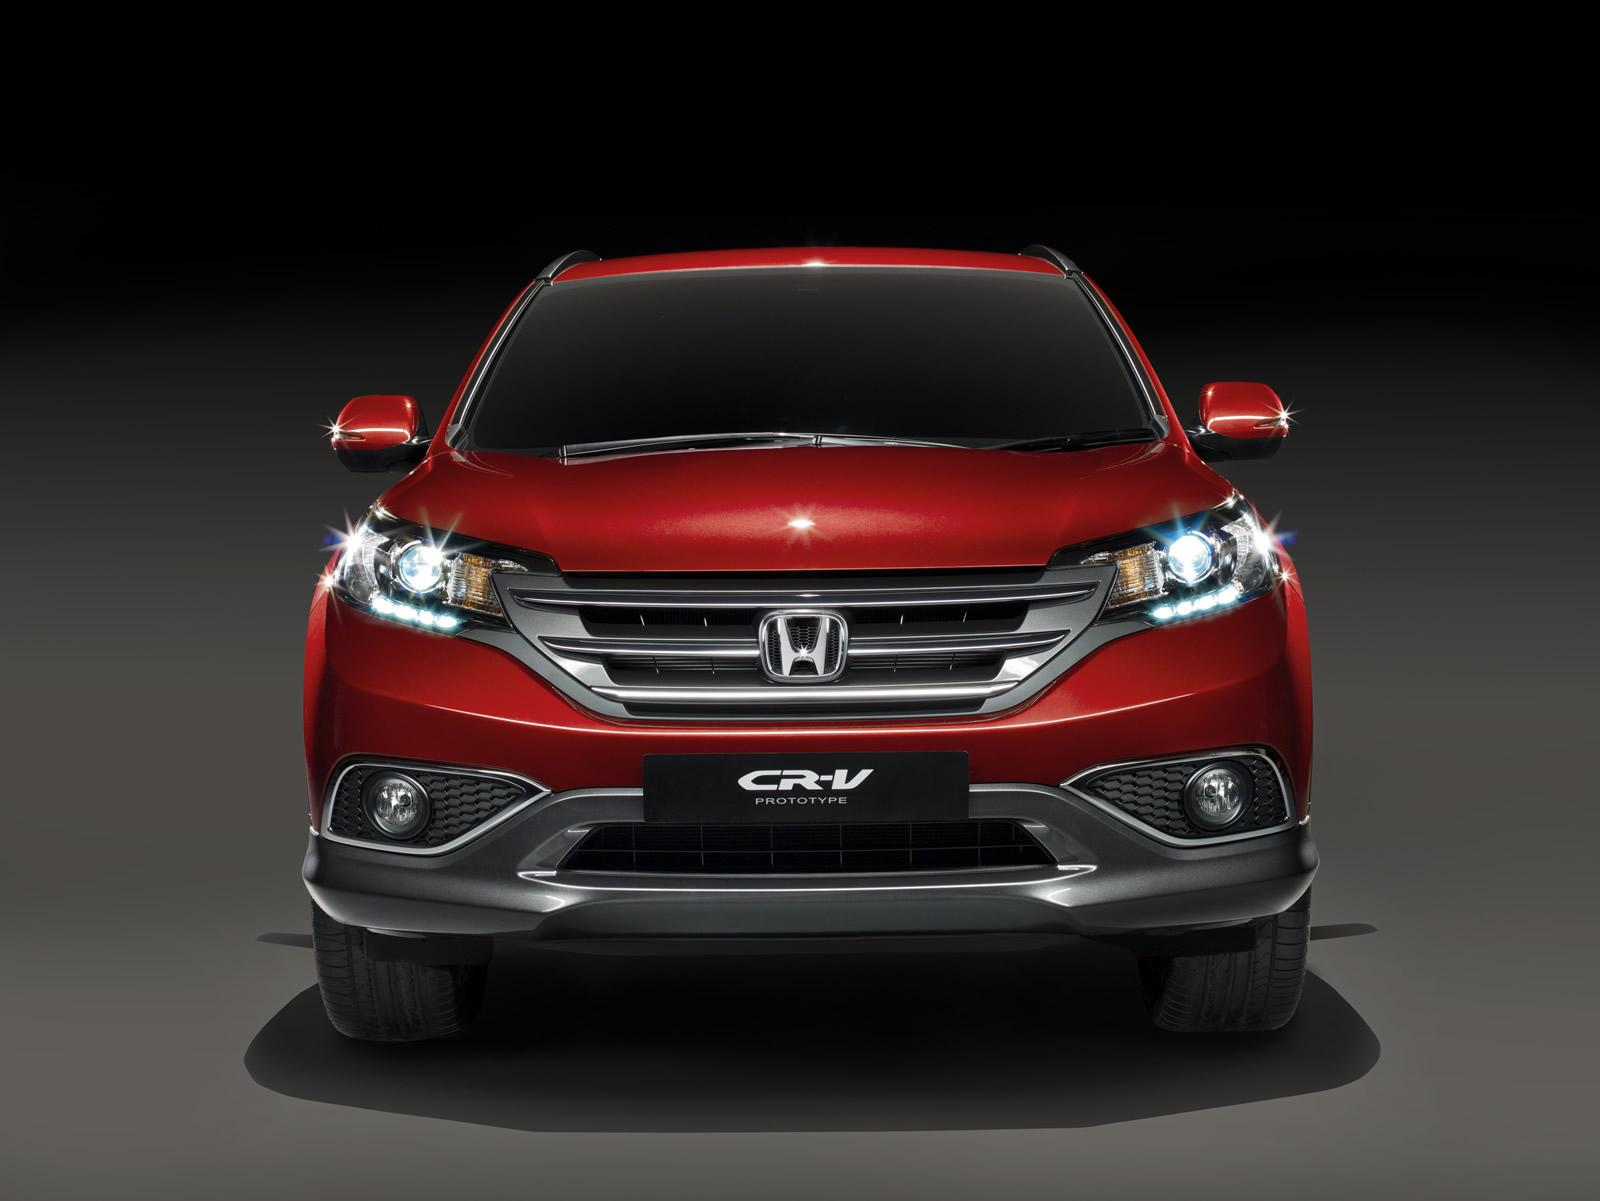 2012 honda cr v european prototype version revealed autoevolution. Black Bedroom Furniture Sets. Home Design Ideas